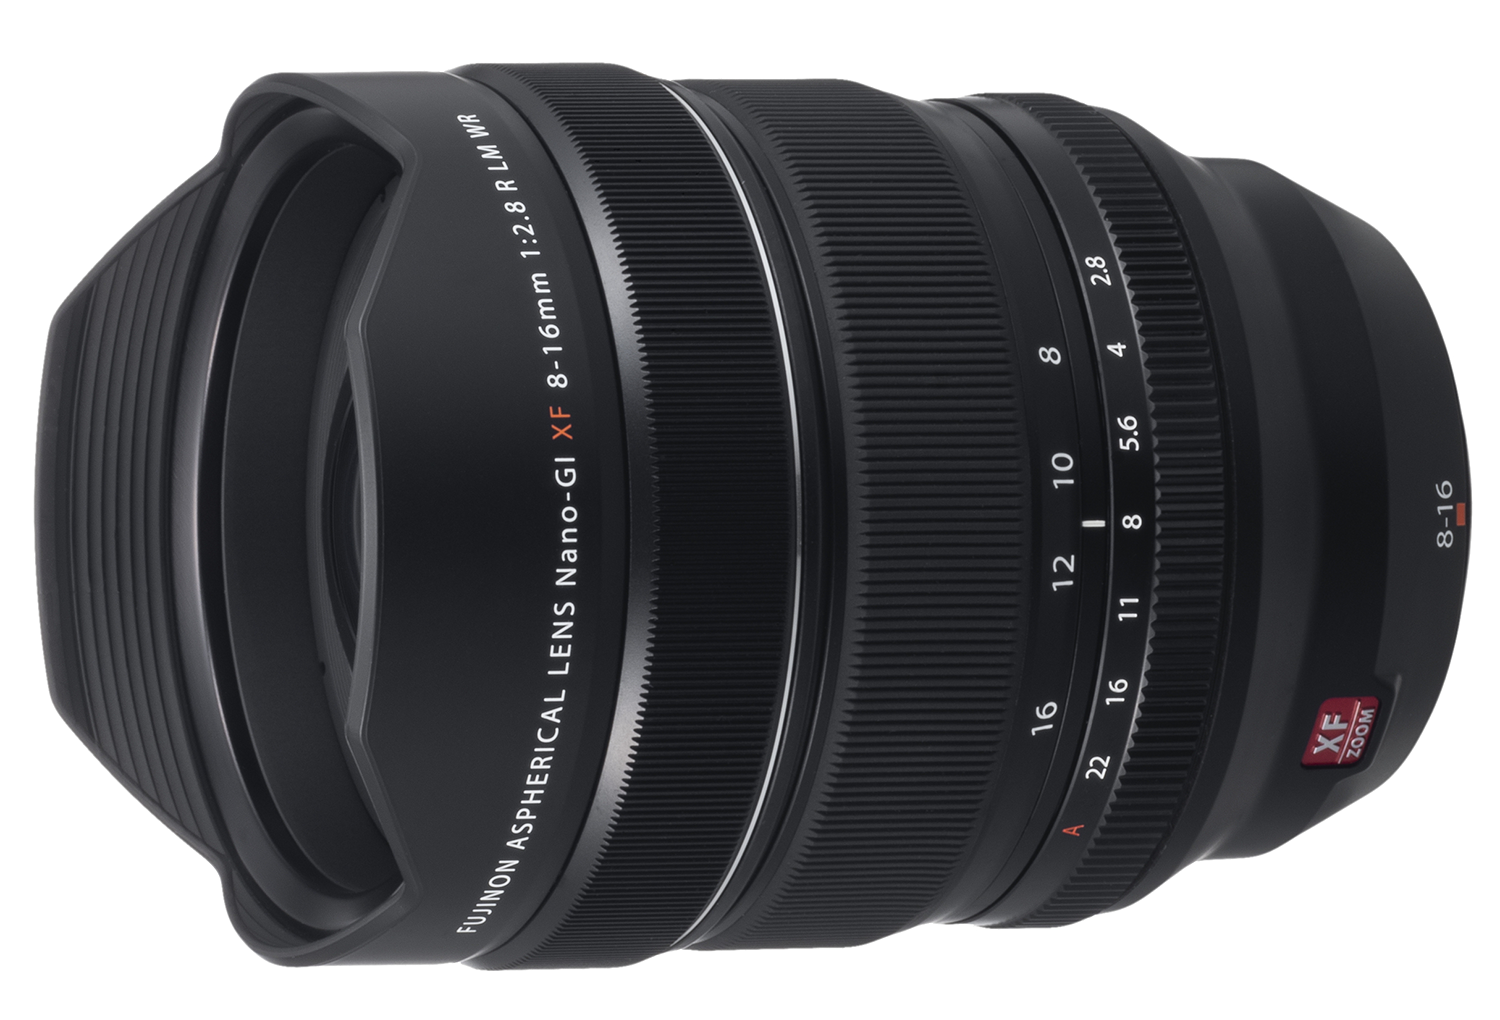 Fujifilm 8-16mm announced